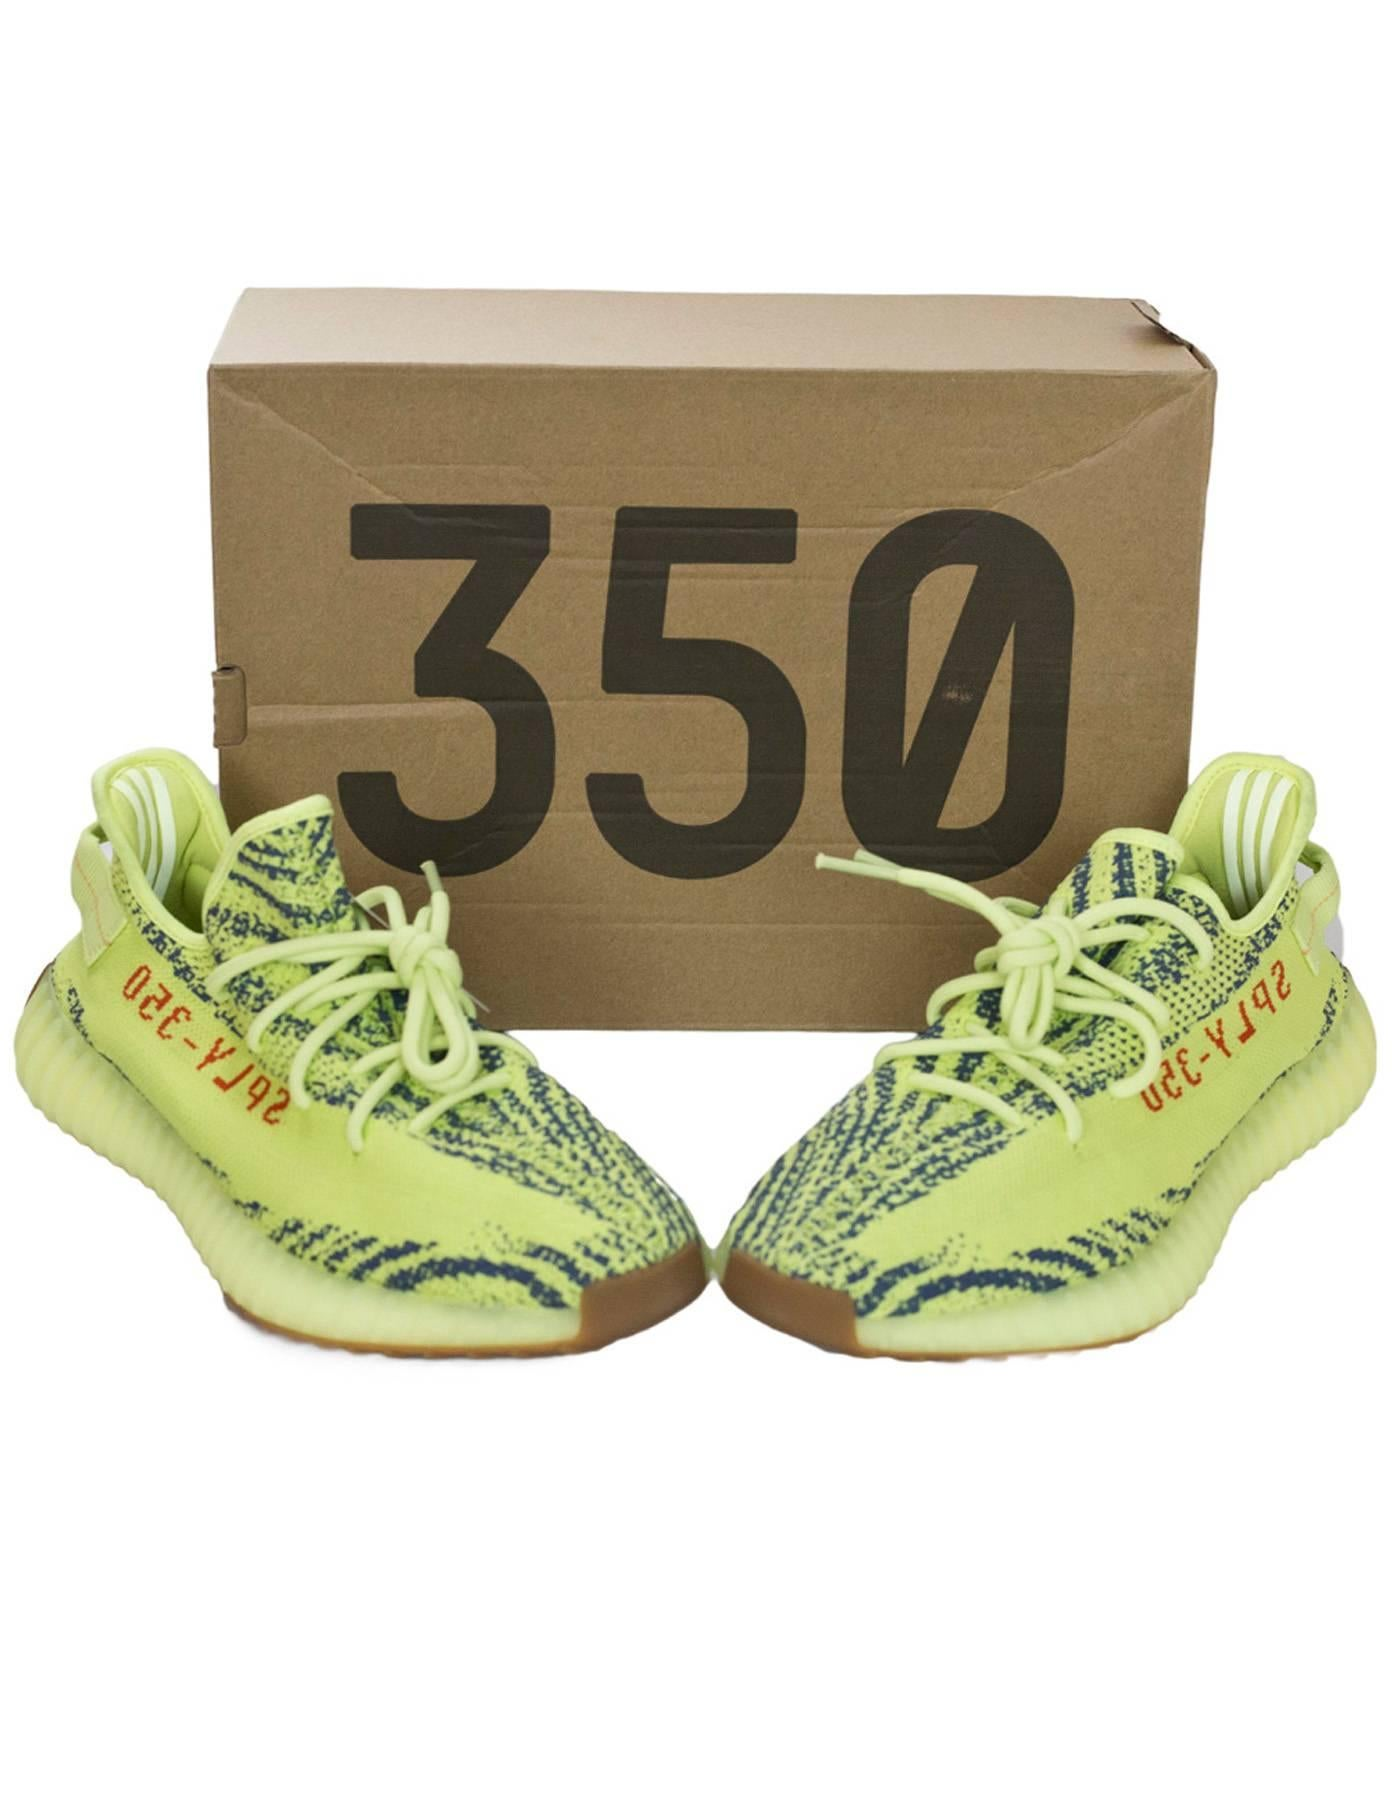 2faf27d7c ... new zealand adidas x kanye west yeezy boost 350 v2 semi frozen yellow  2.0 sneakers sz